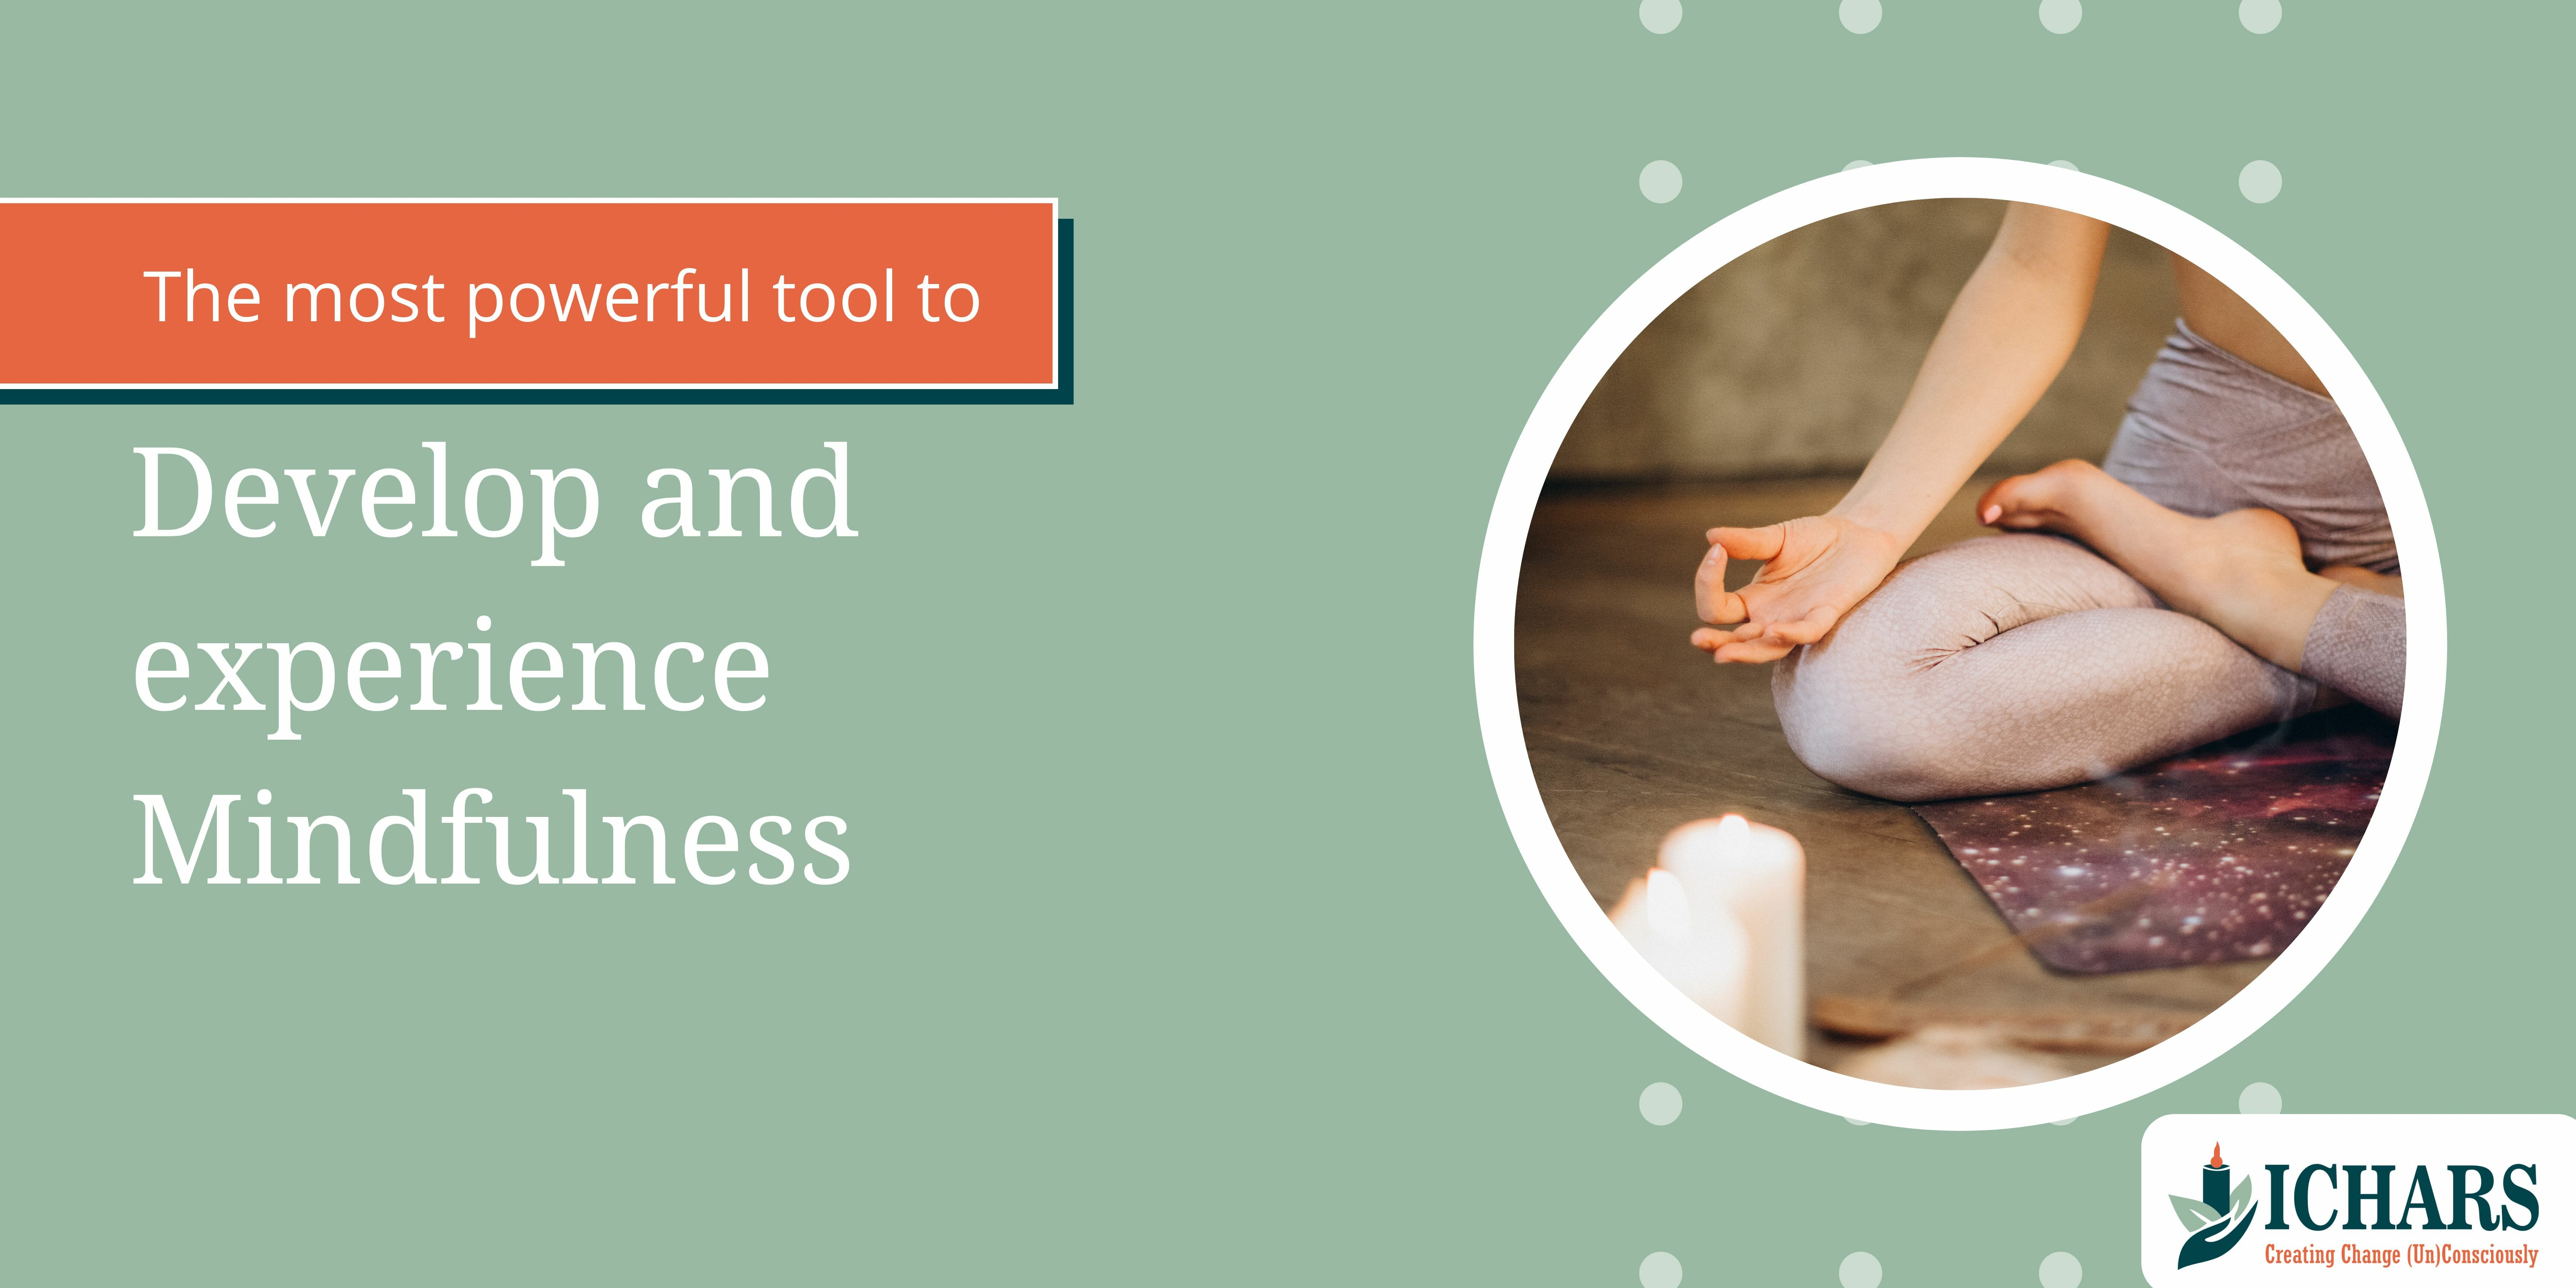 what why how to develop mindfulness - The most powerful and effective tool to develop and experience Mindfulness